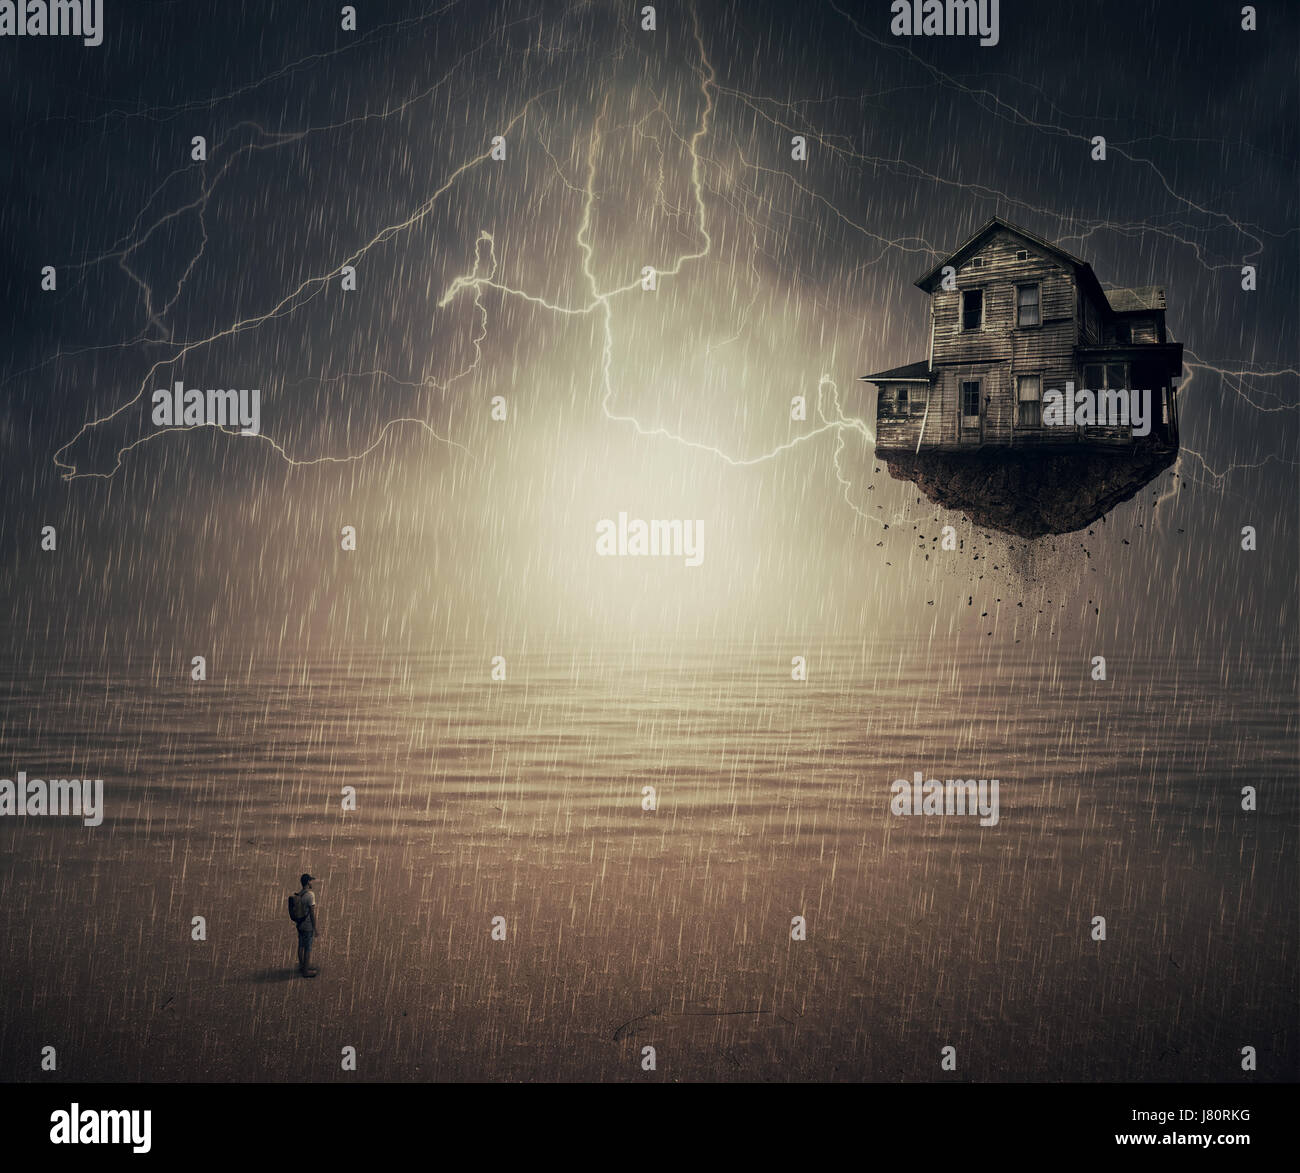 Surreal backround of a man standing in the rain, in front of a flying house ripped from the ground, near the ocean. - Stock Image